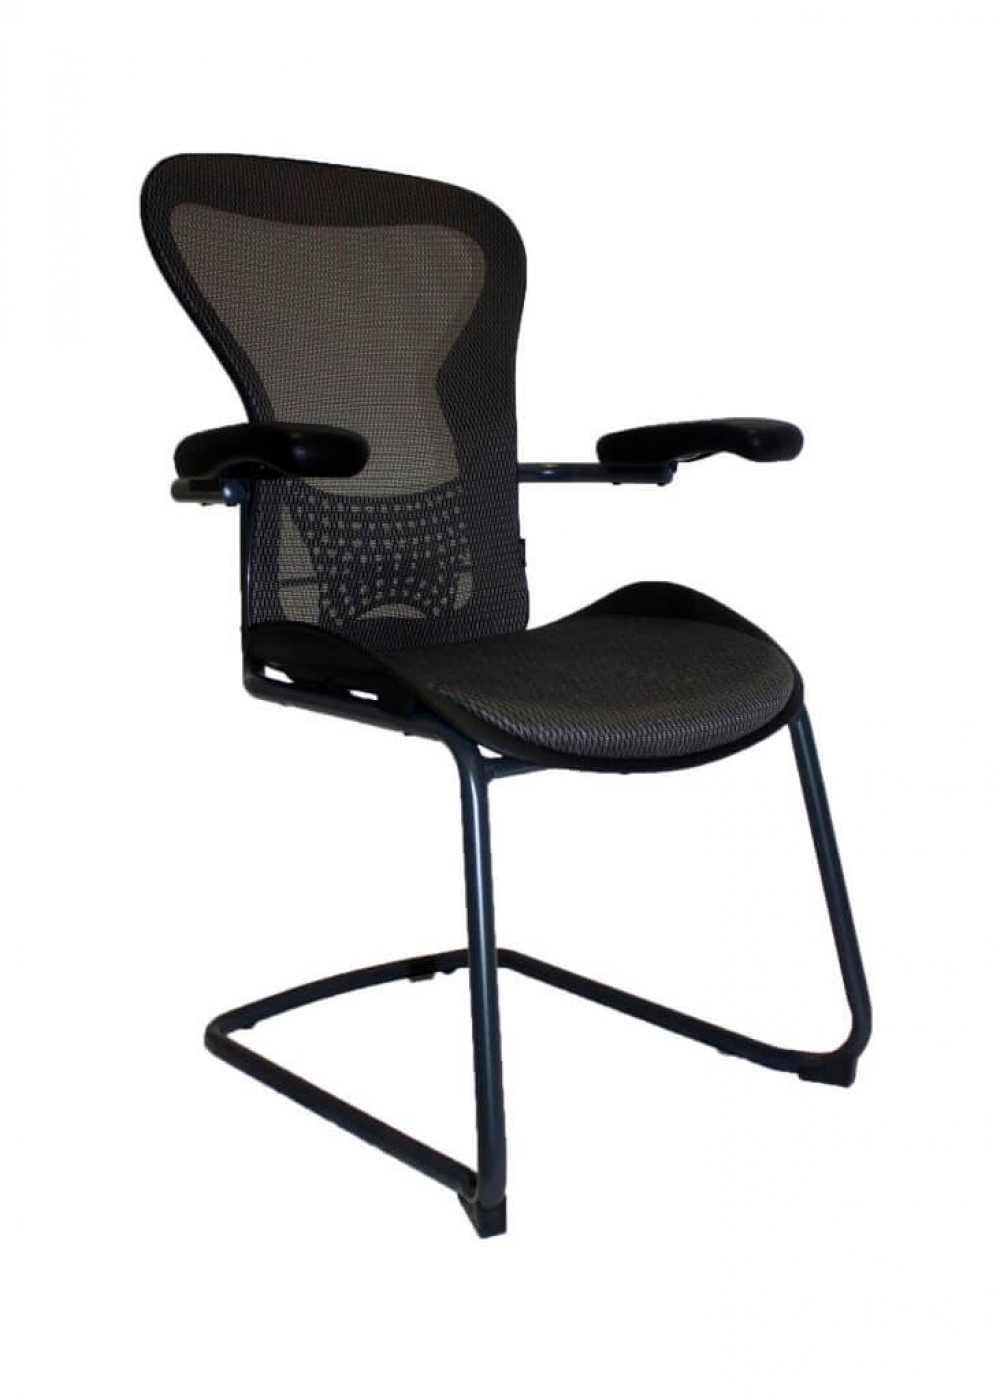 Office Furniture Guest Chairs 2 pack carey guest chairs for office